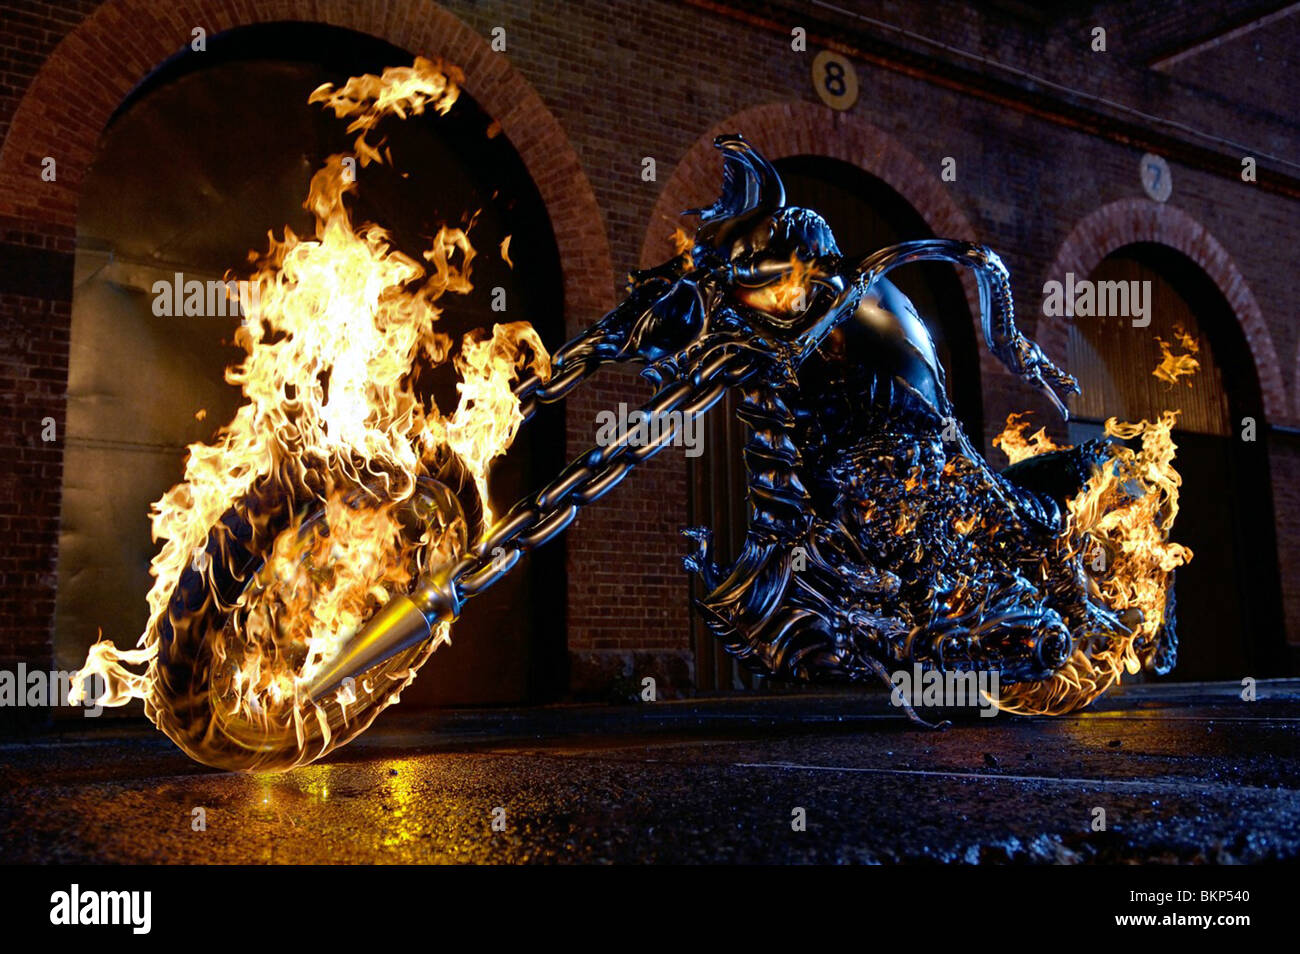 GHOST RIDER -2007 - Stock Image